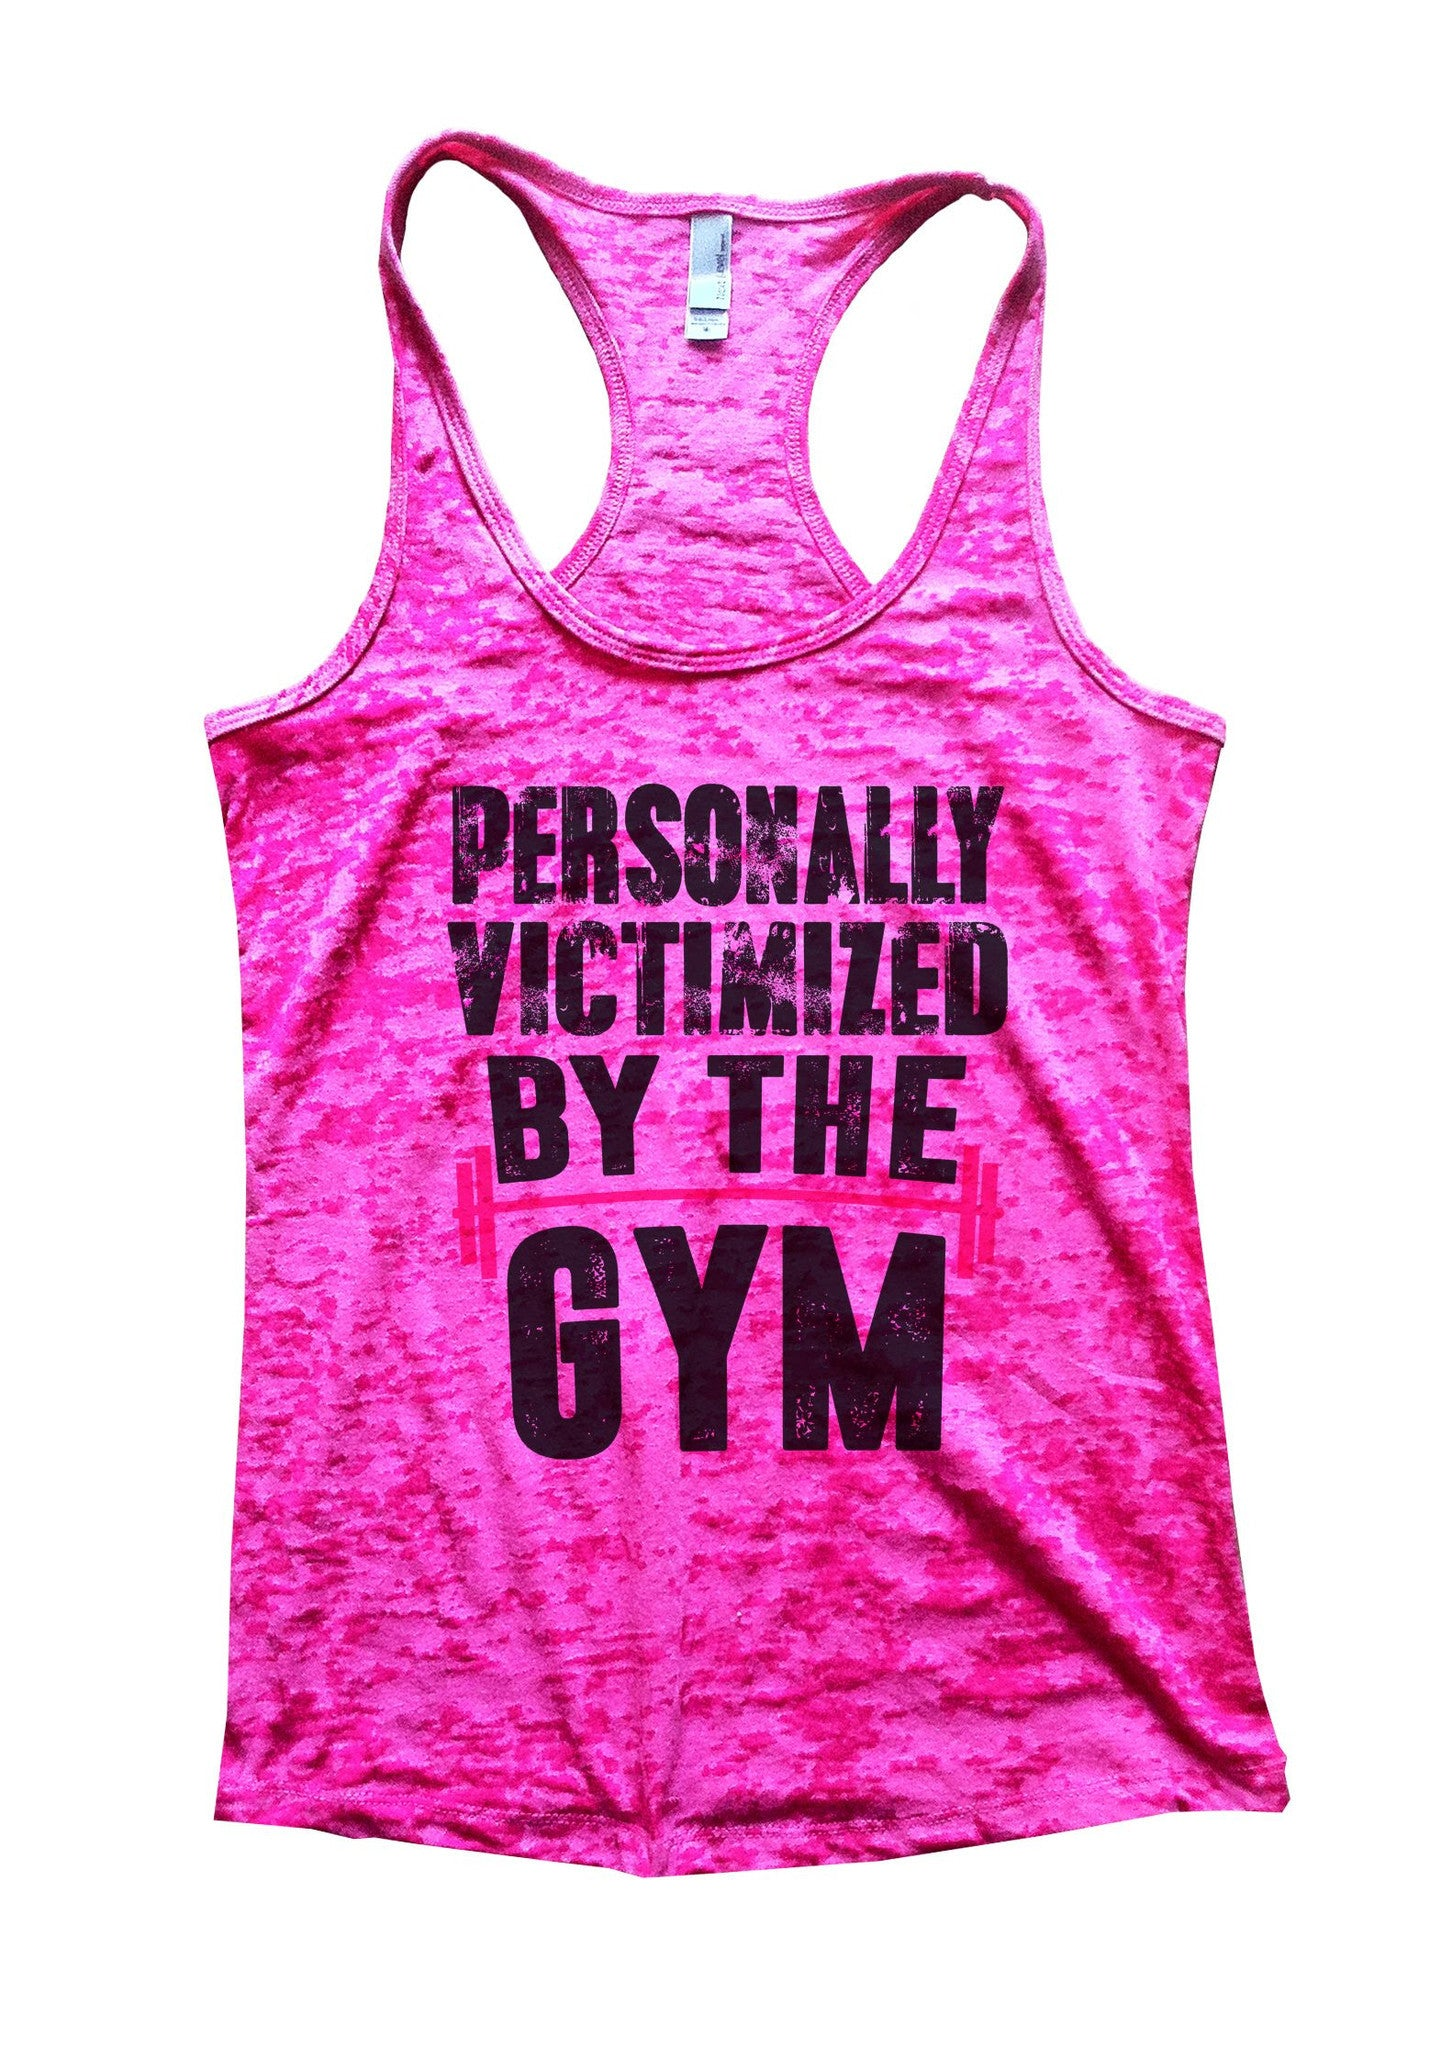 Personally Victimized By The Gym Burnout Tank Top By BurnoutTankTops.com - 1109 - Funny Shirts Tank Tops Burnouts and Triblends  - 5